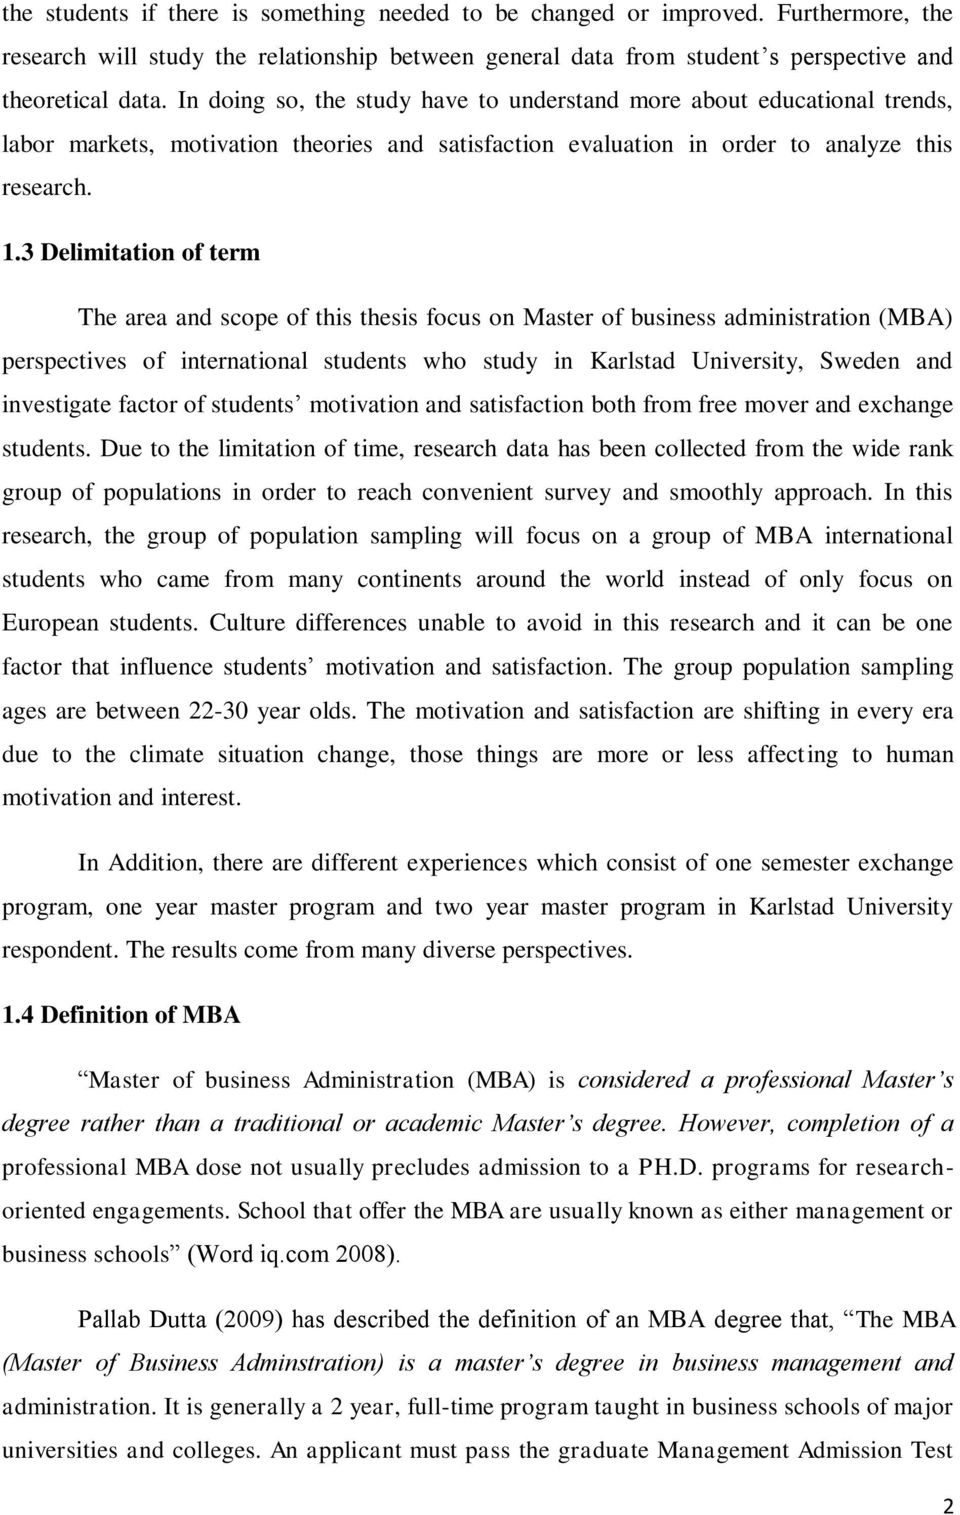 3 Delimitation of term The area and scope of this thesis focus on Master of business administration (MBA) perspectives of international students who study in Karlstad University, Sweden and